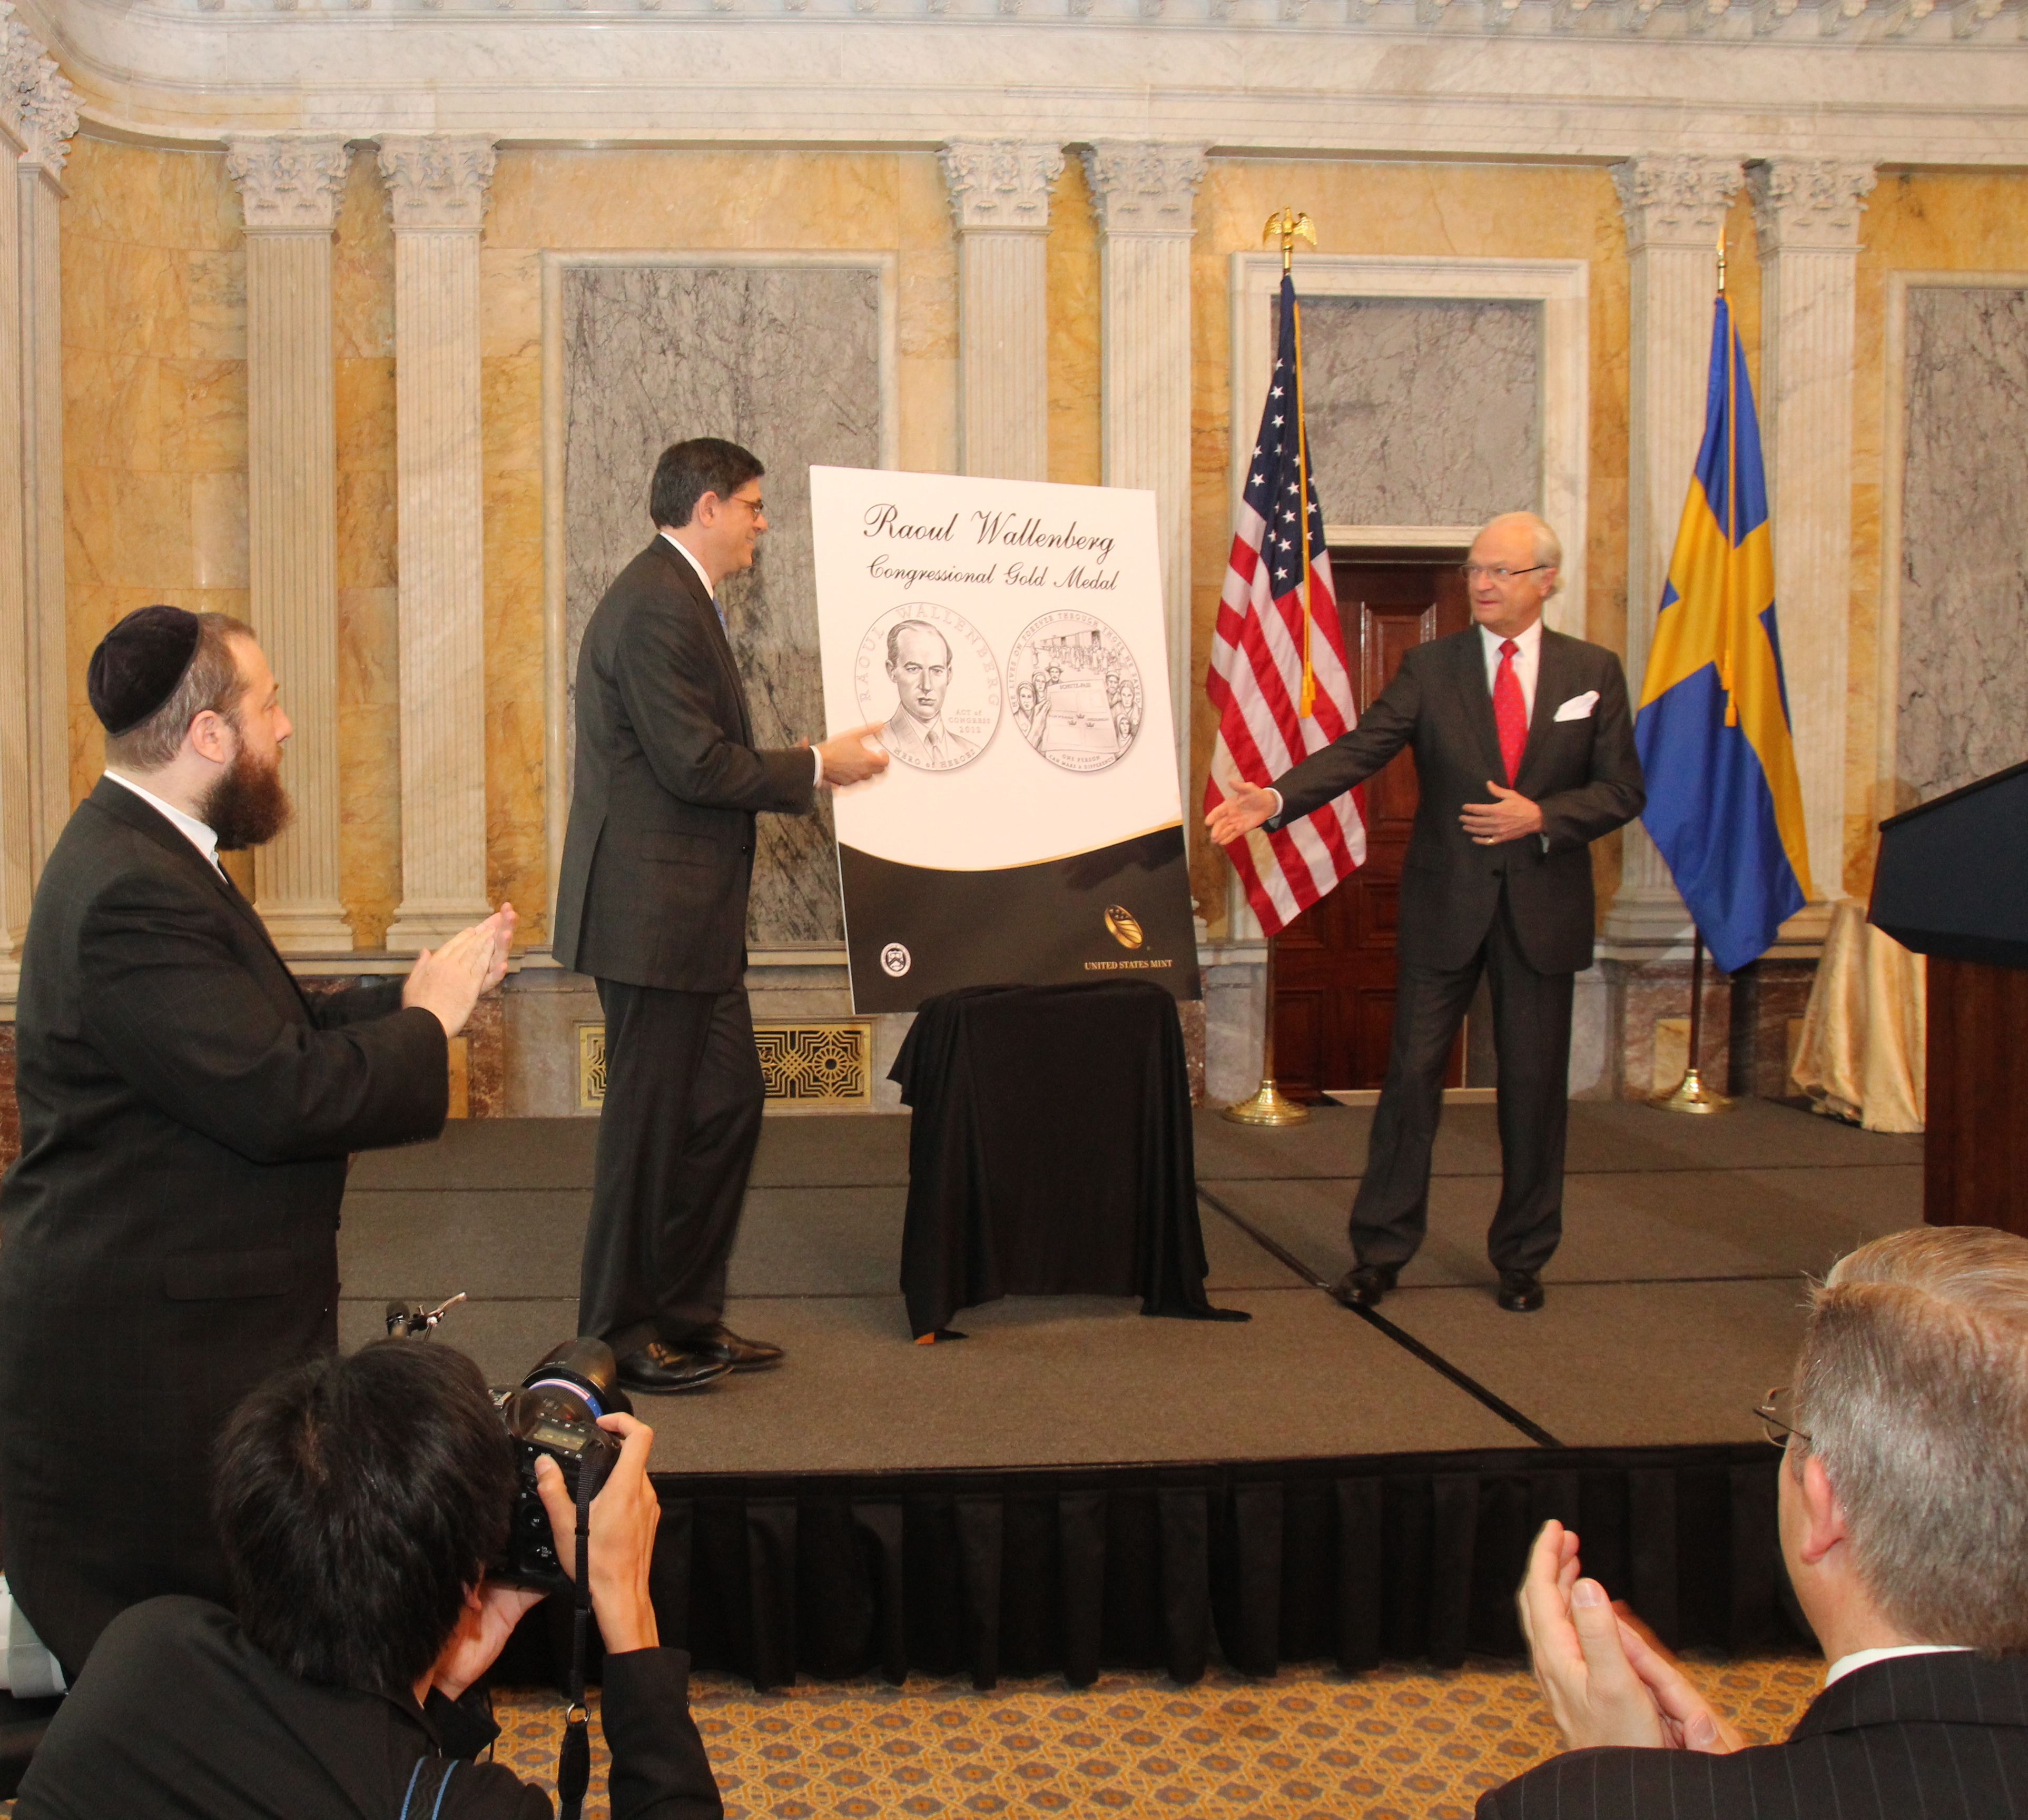 Unveiling of the design of the Raoul Wallenberg Congressional Gold Medal